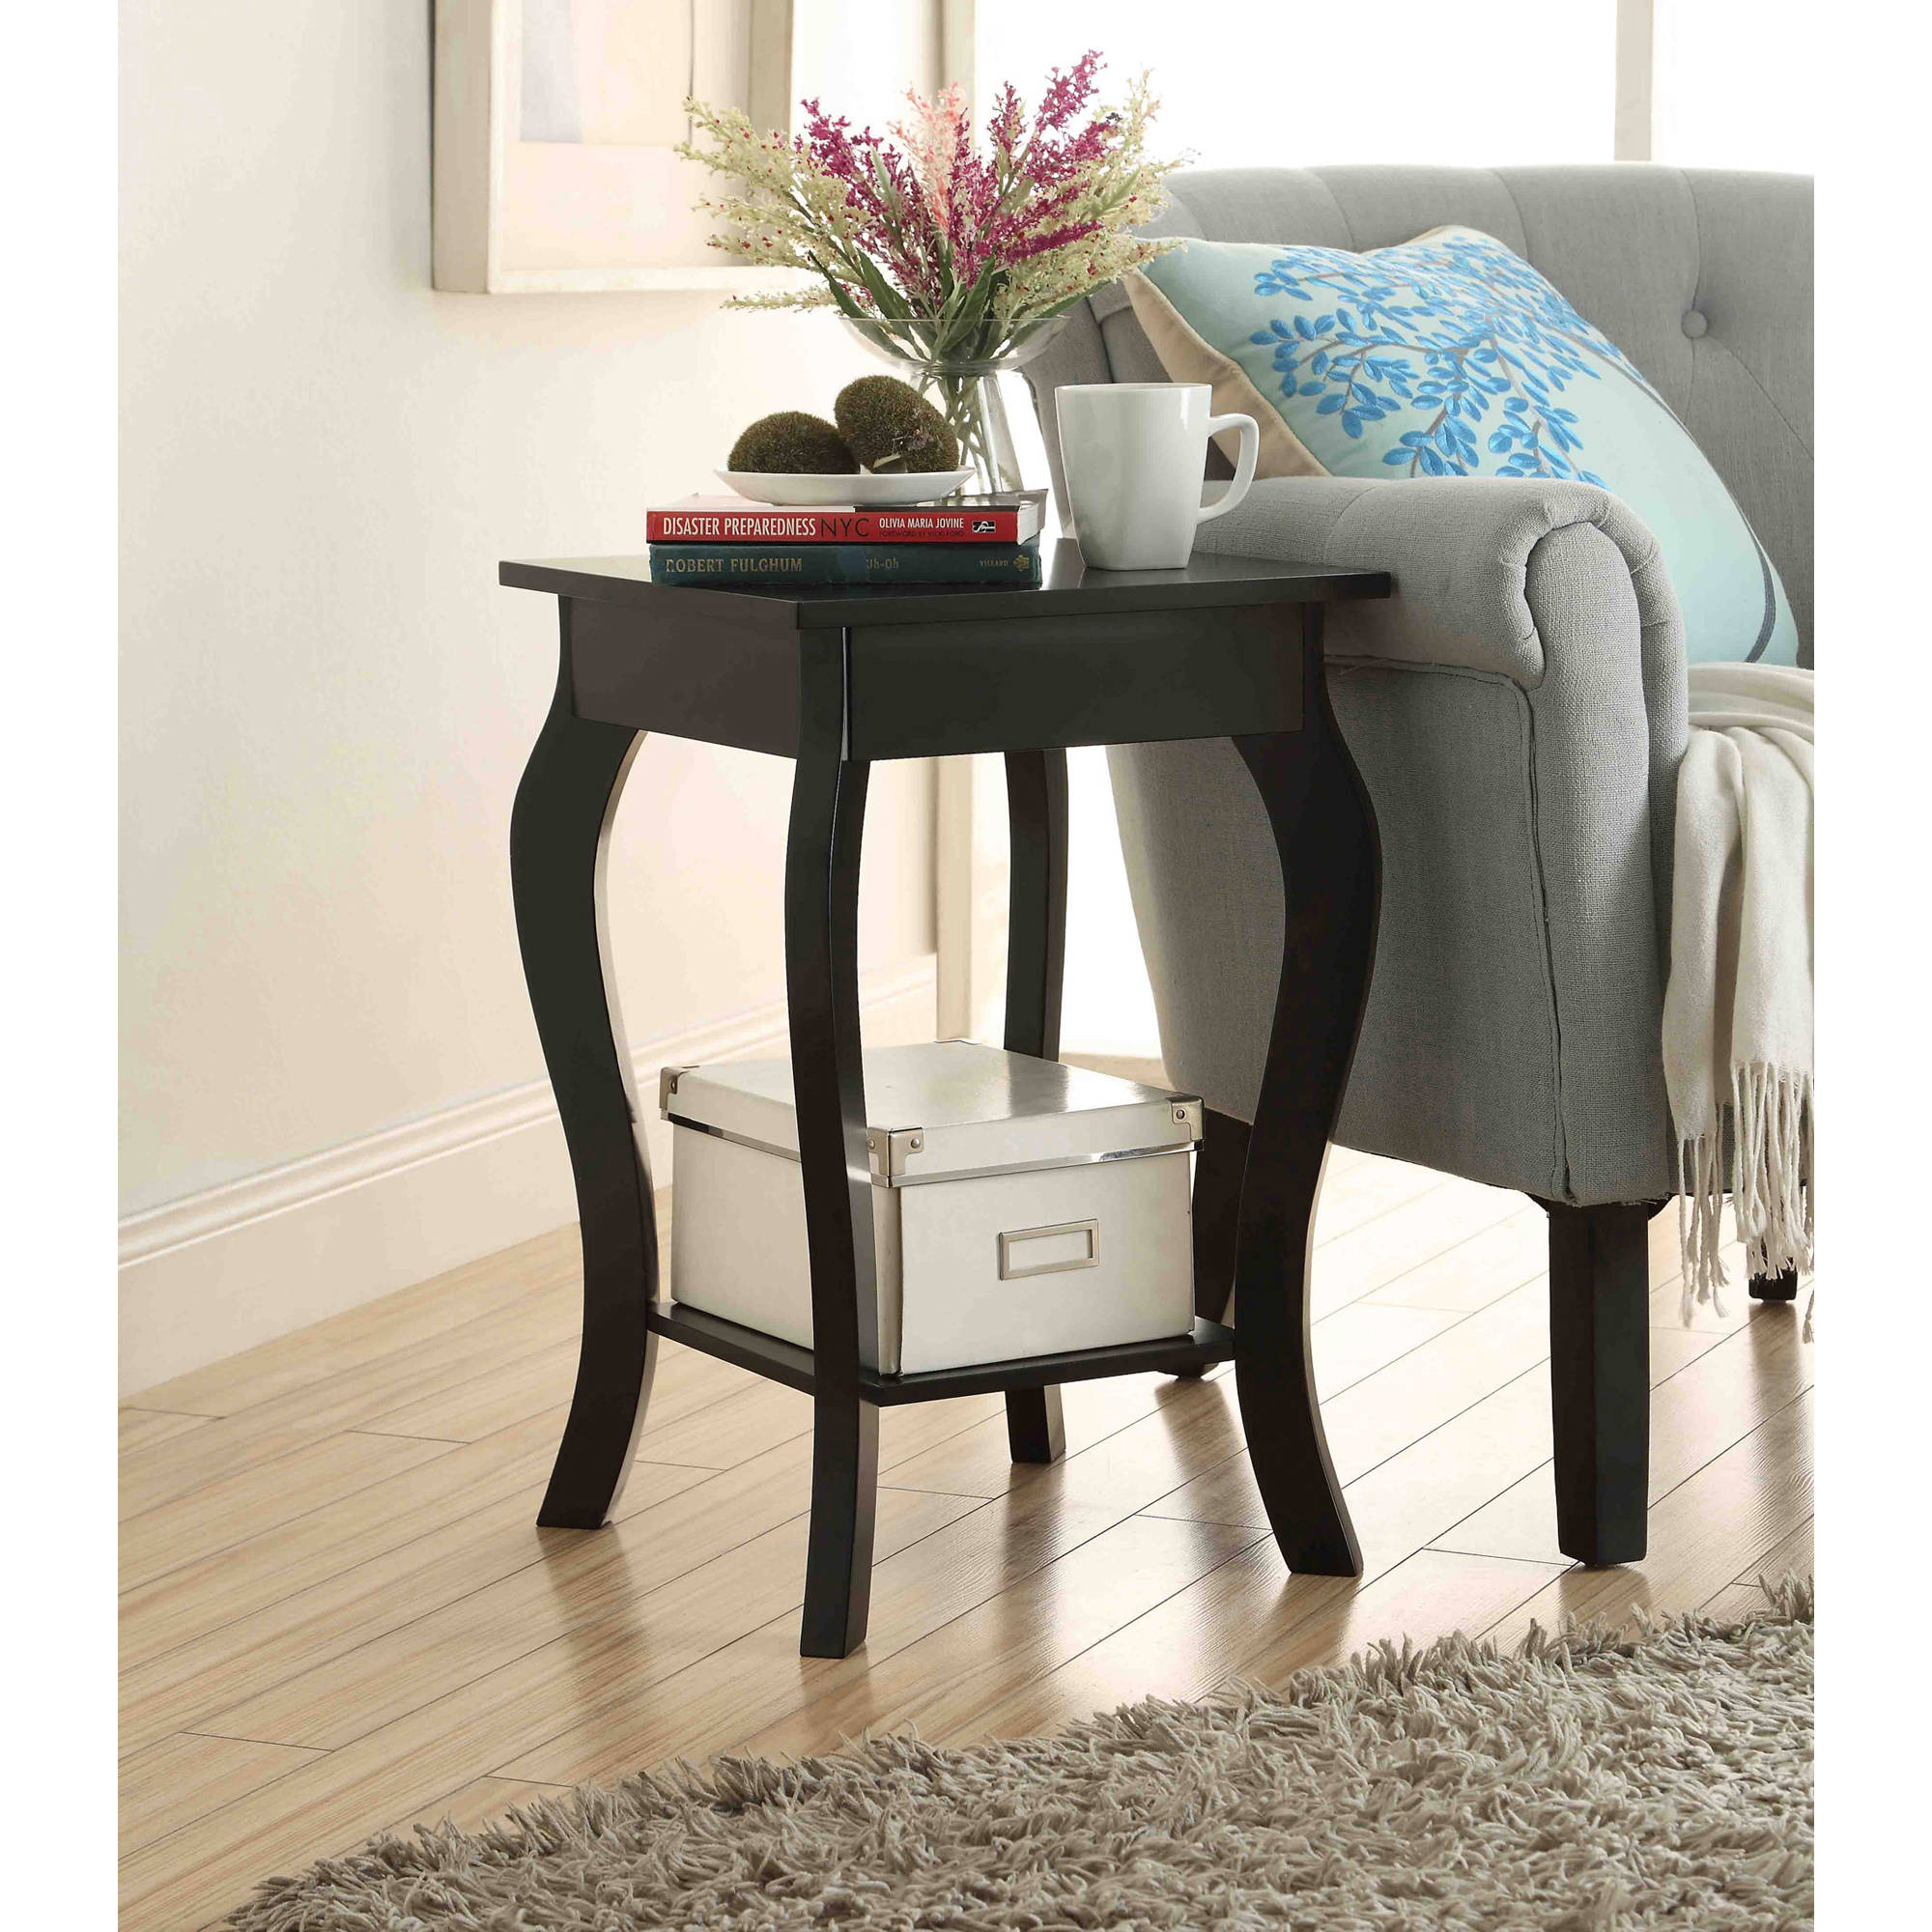 invalid category small accent tables under dining room table legs wood patio chairs clearance pair mirrored bedside chippendale furniture kidney shaped top vintage industrial side